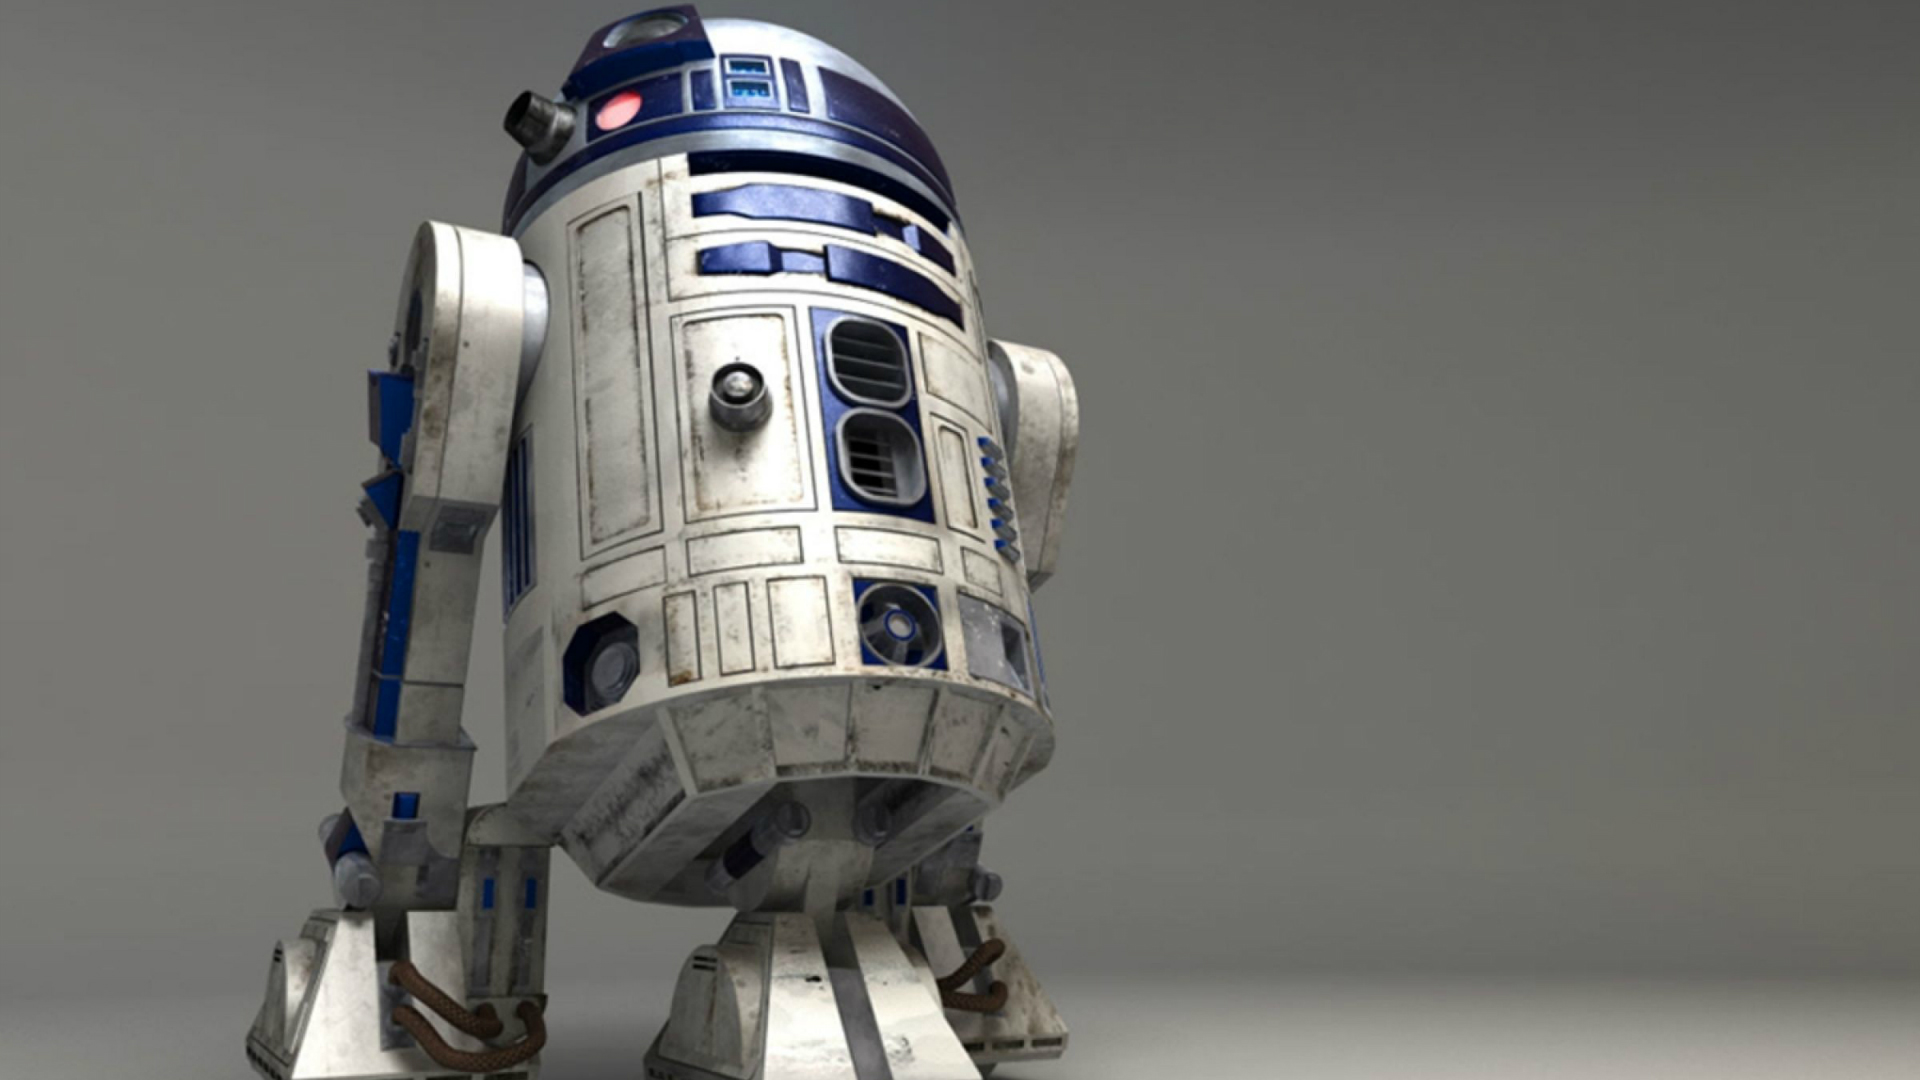 R2-D2, the iconic robot from Star Wars.